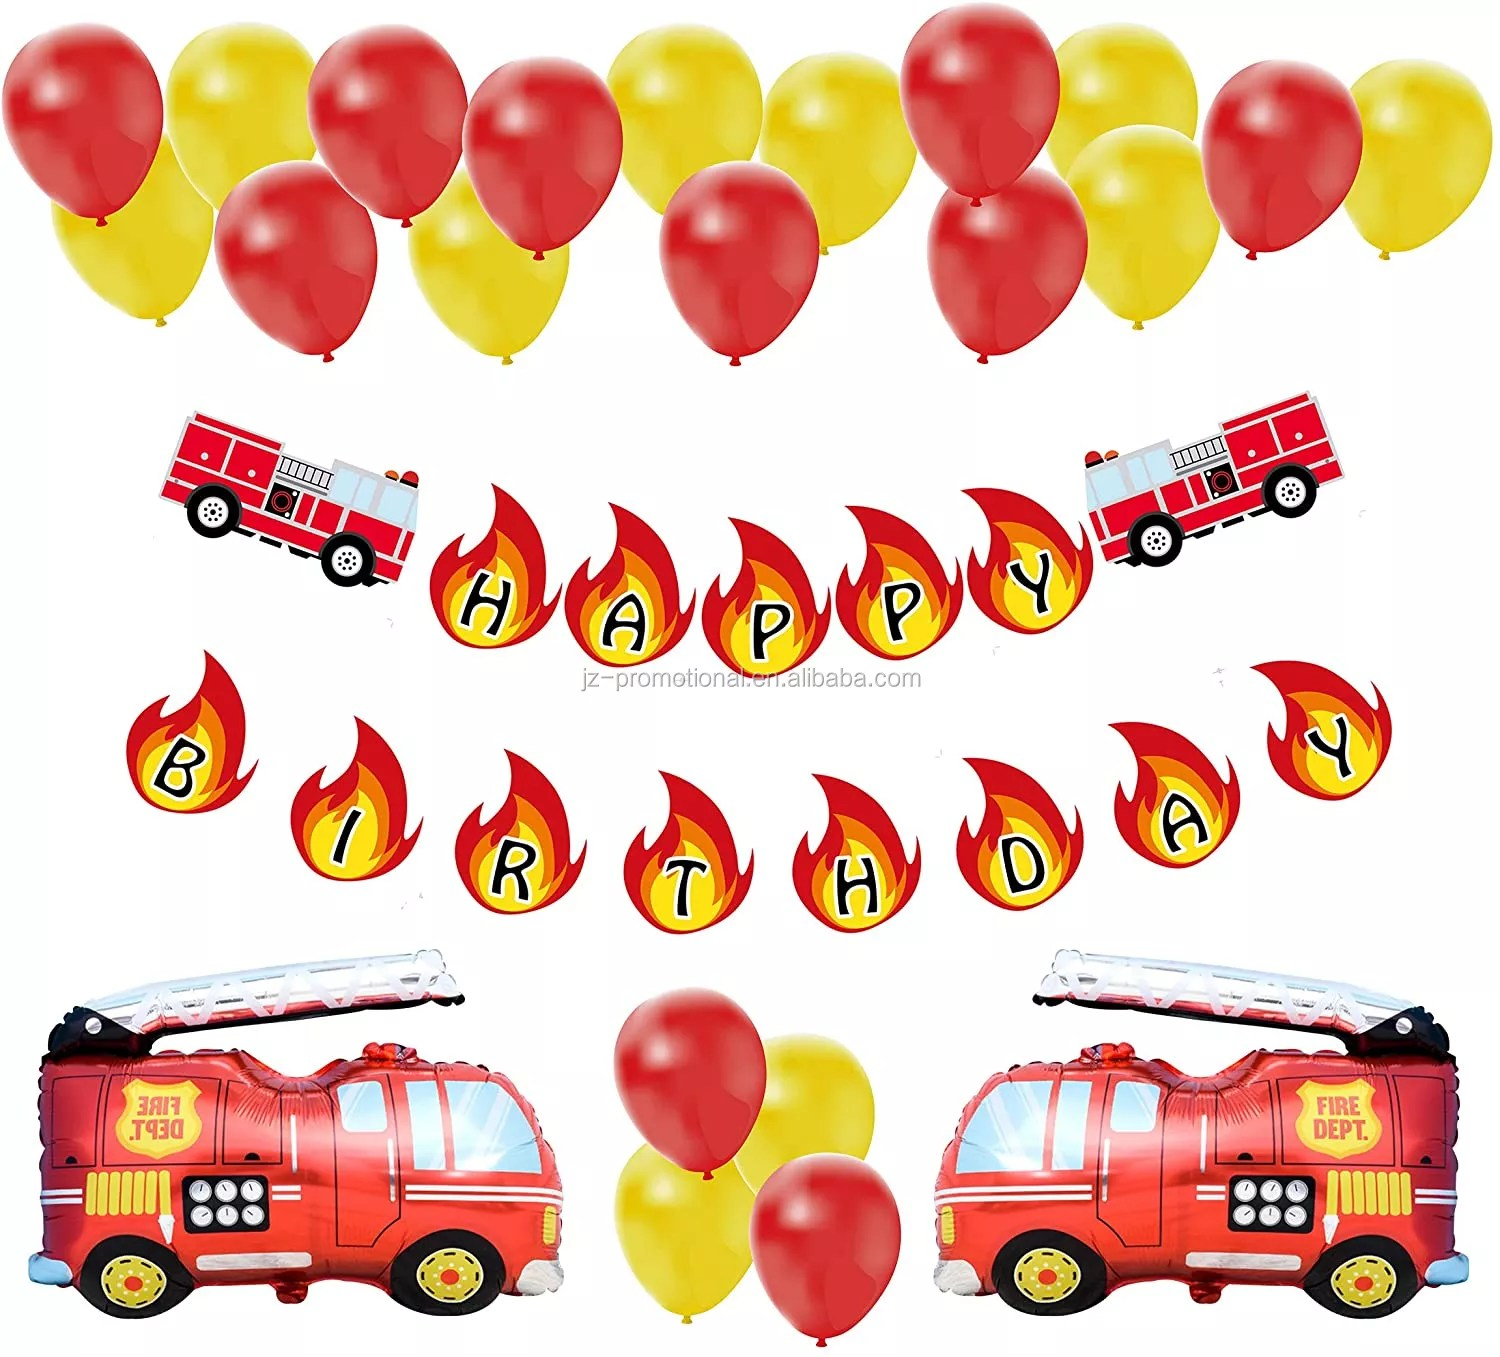 Fire Truck Birthday Party Decoration Pack Fireman Firefighter Bday Party Banner Balloon Decor Set For Boy Buy Fire Truck Birthday Party Decoration Firefighter Party Construction Product On Alibaba Com